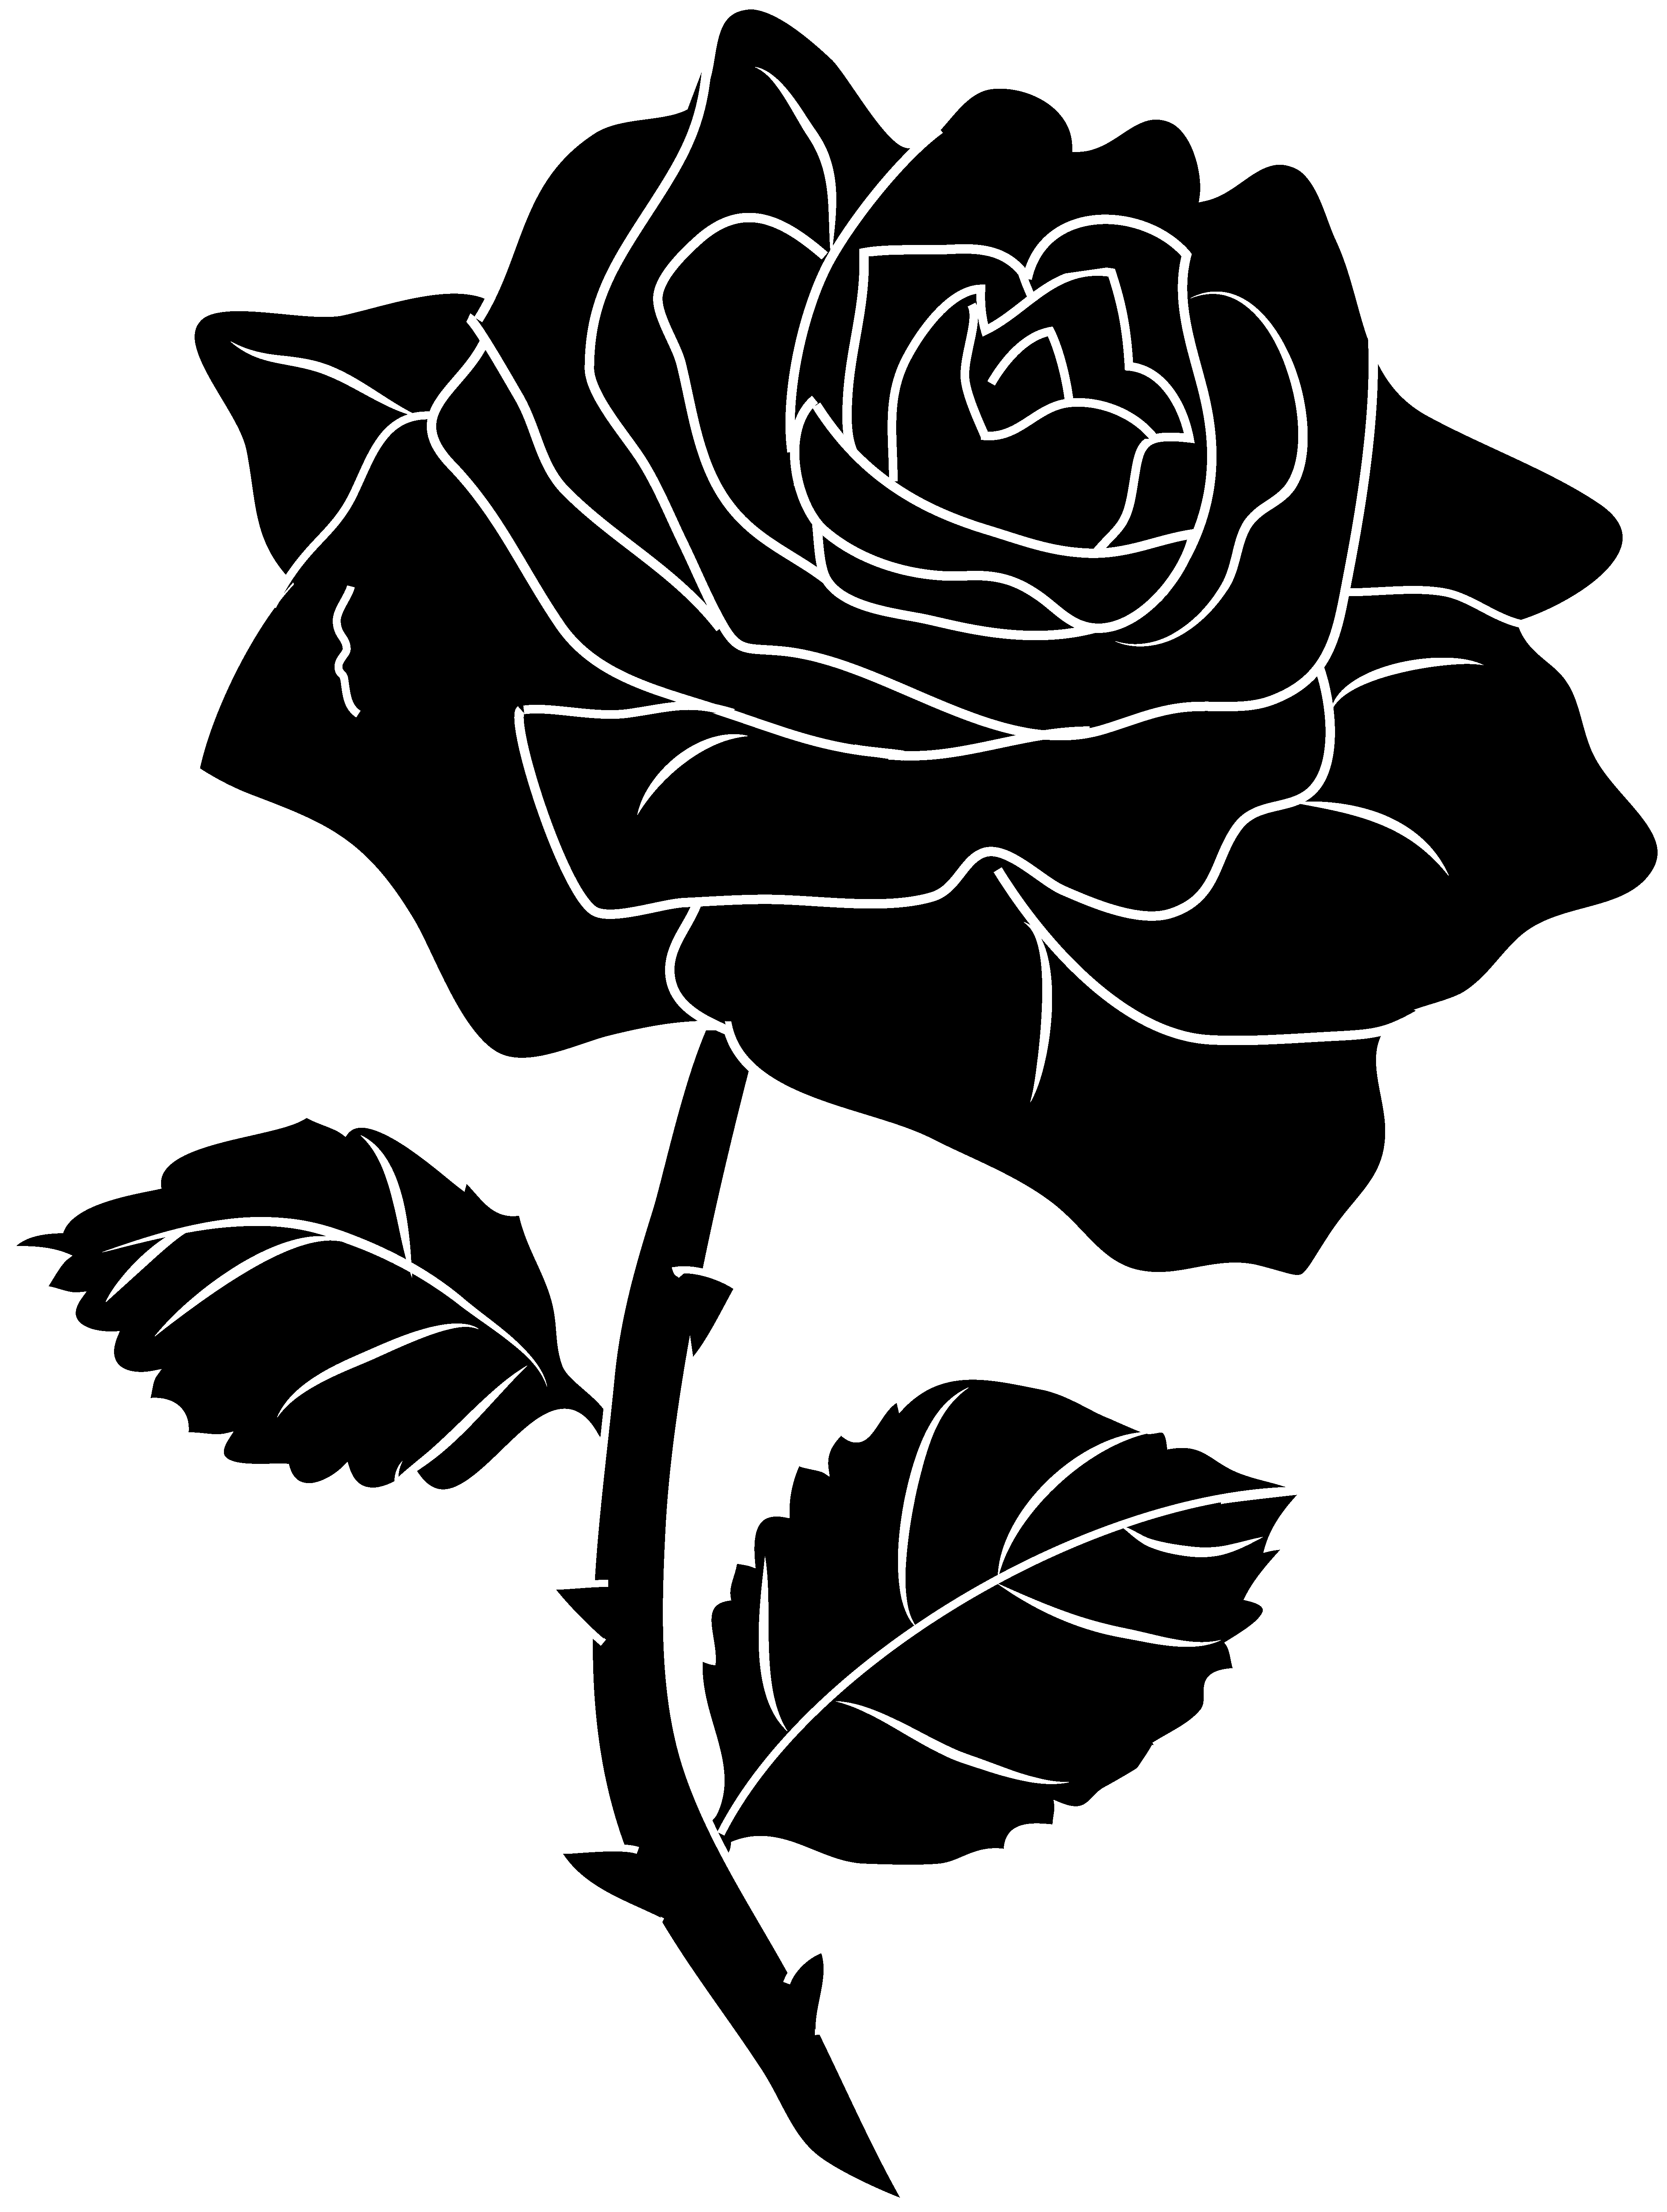 Rose Clipart Black And White-rose clipart black and white-14